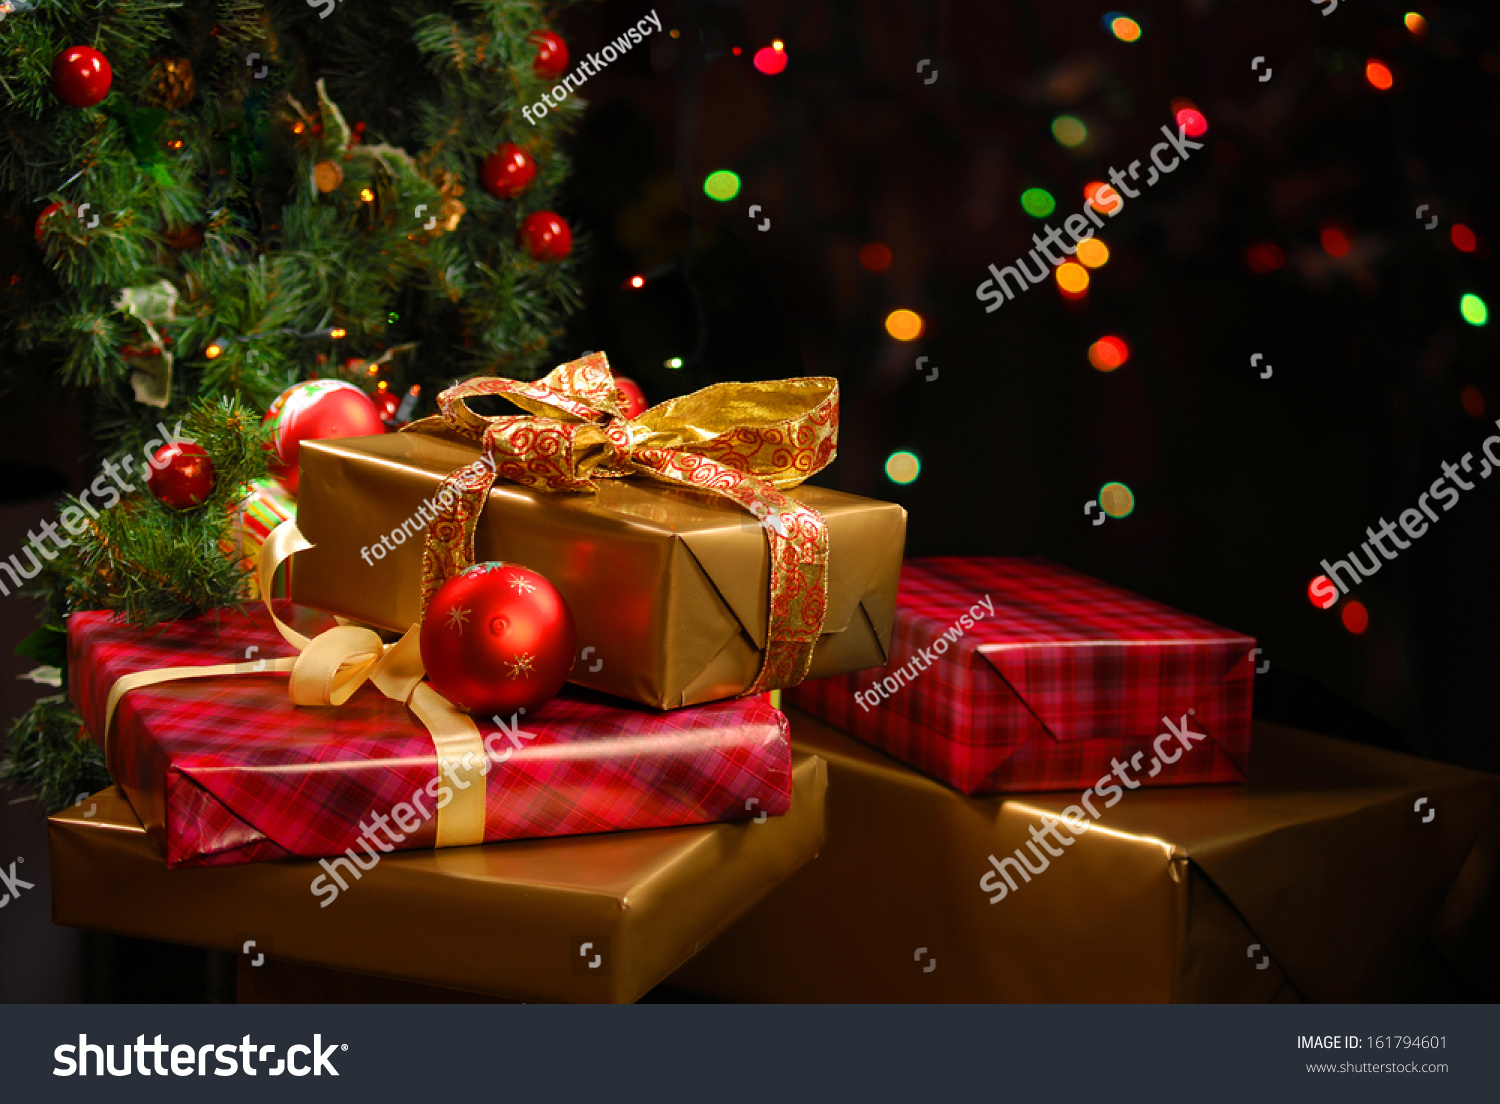 Christmas tree with presents and lights - Gifts Under The Christmas Tree Lights Background Preview Save To A Lightbox